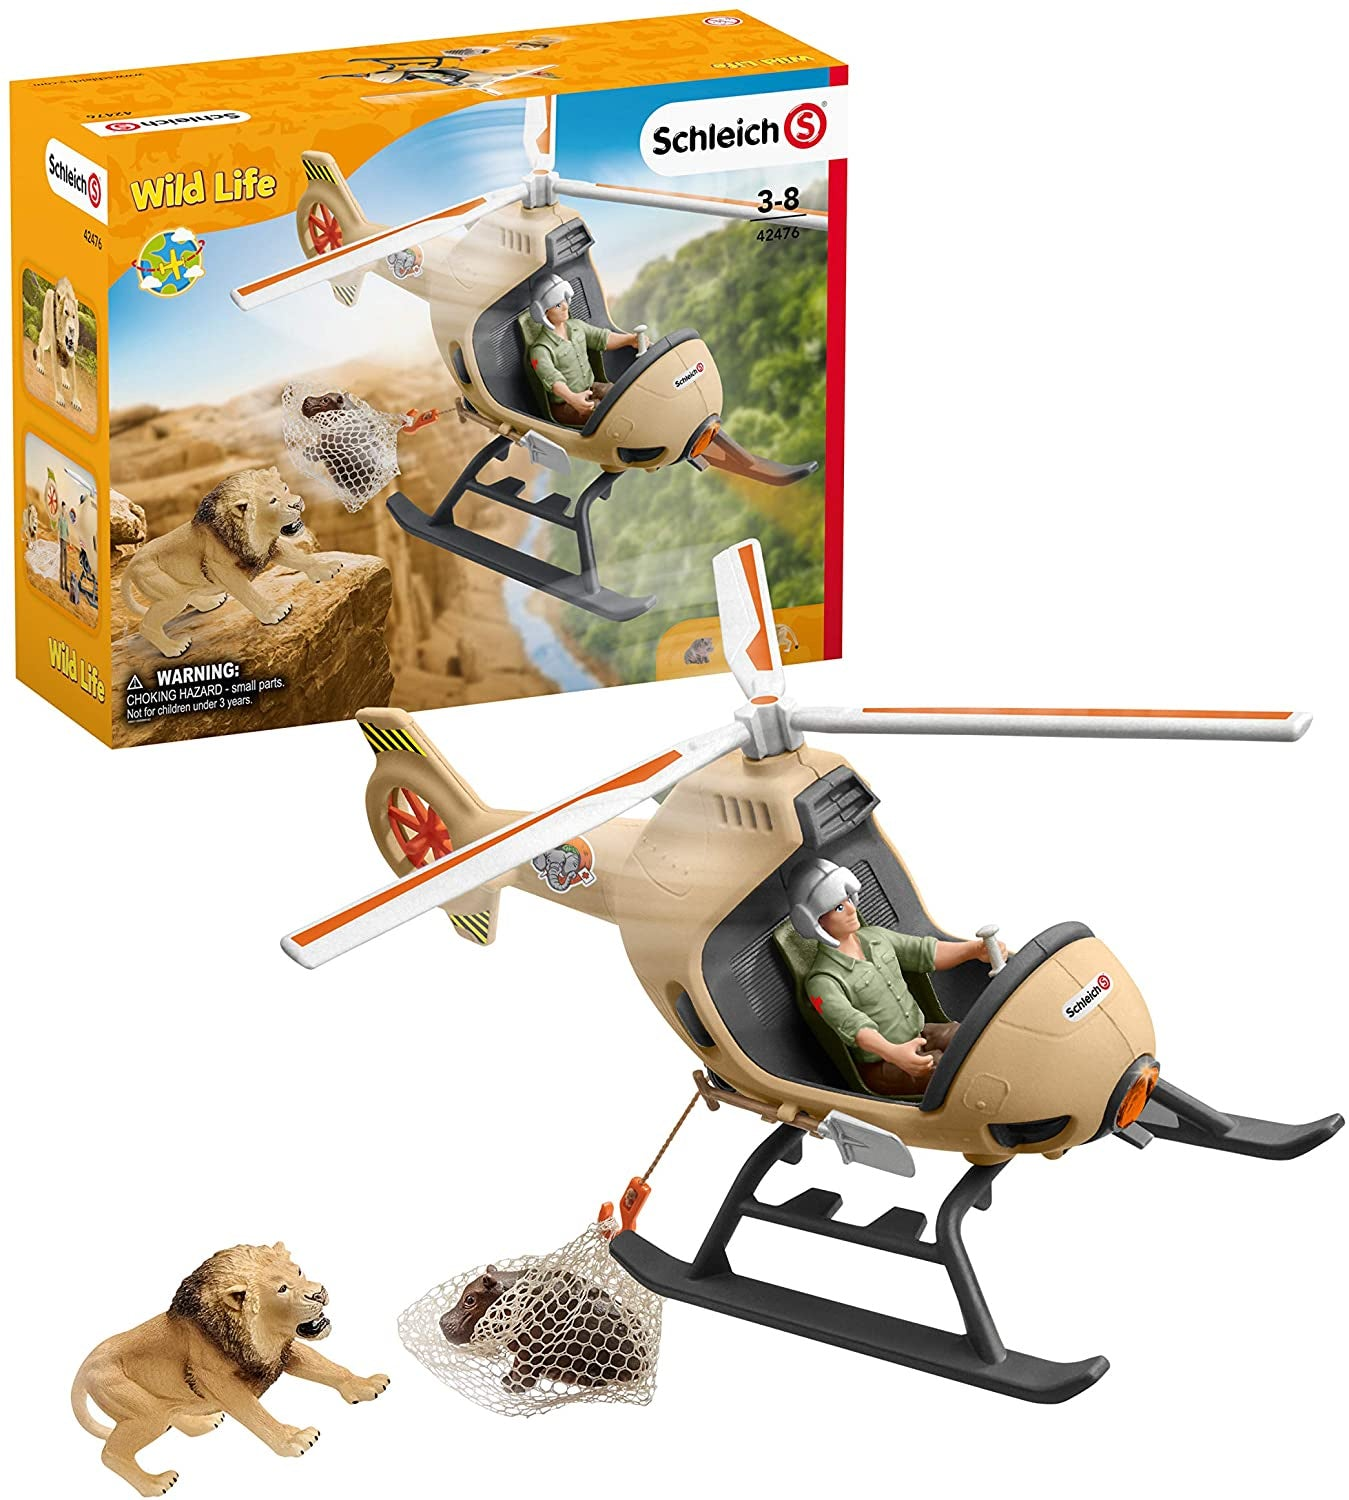 Schleich Wild Life 42476 Animal Rescue Helicopter Playset